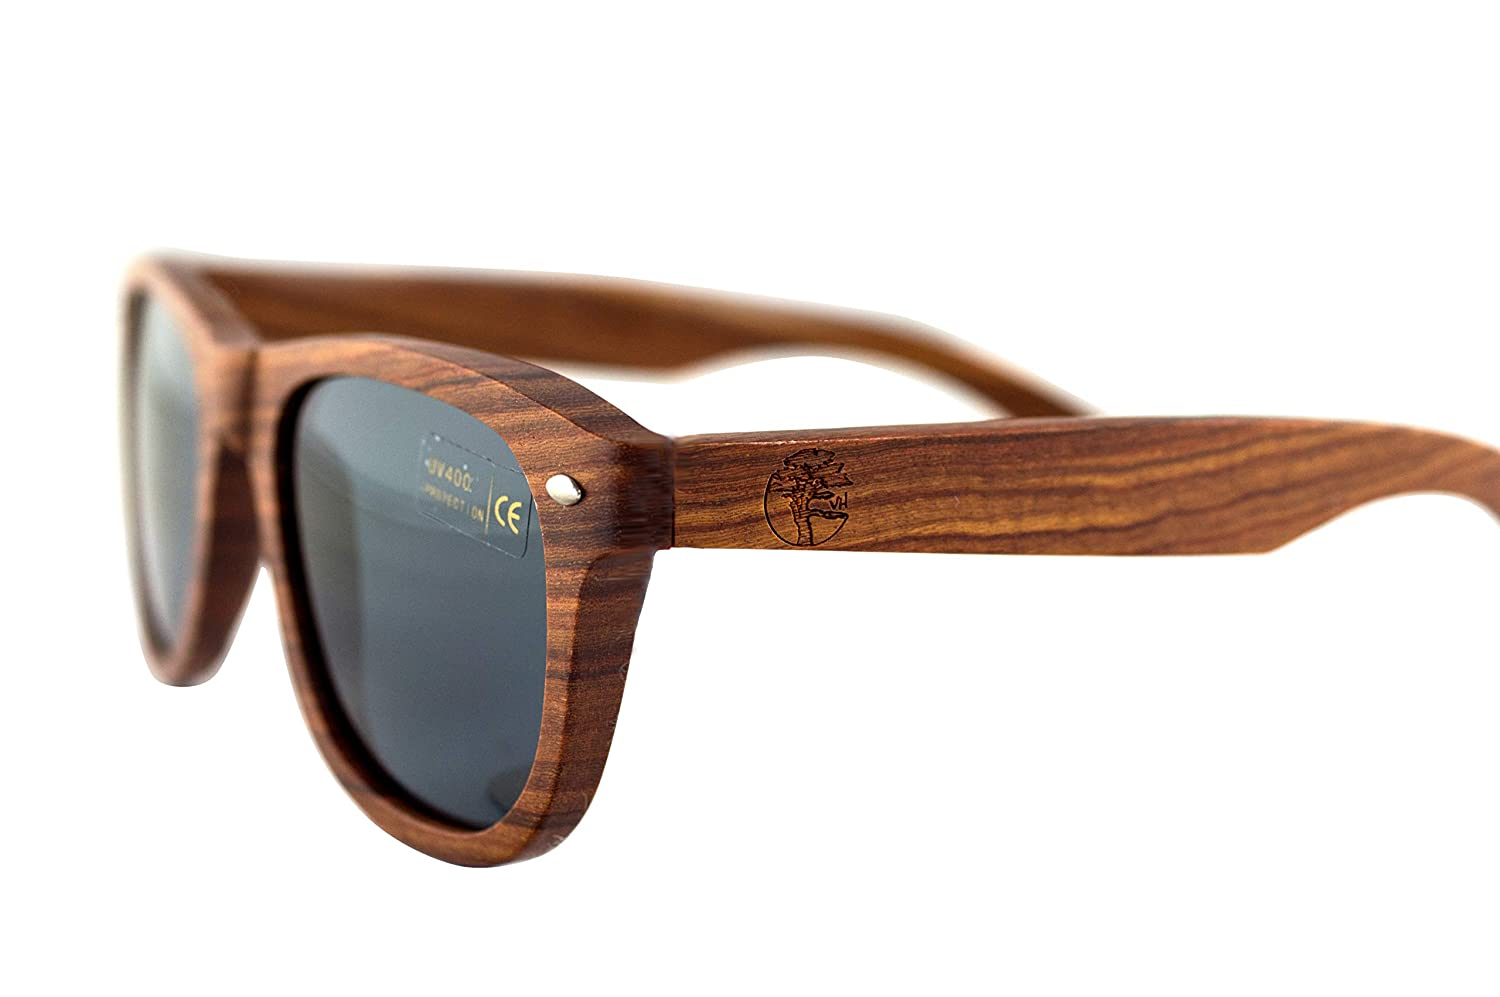 607e21d78f6 Amazon.com  Real Solid Handmade Wooden Sunglasses for Men